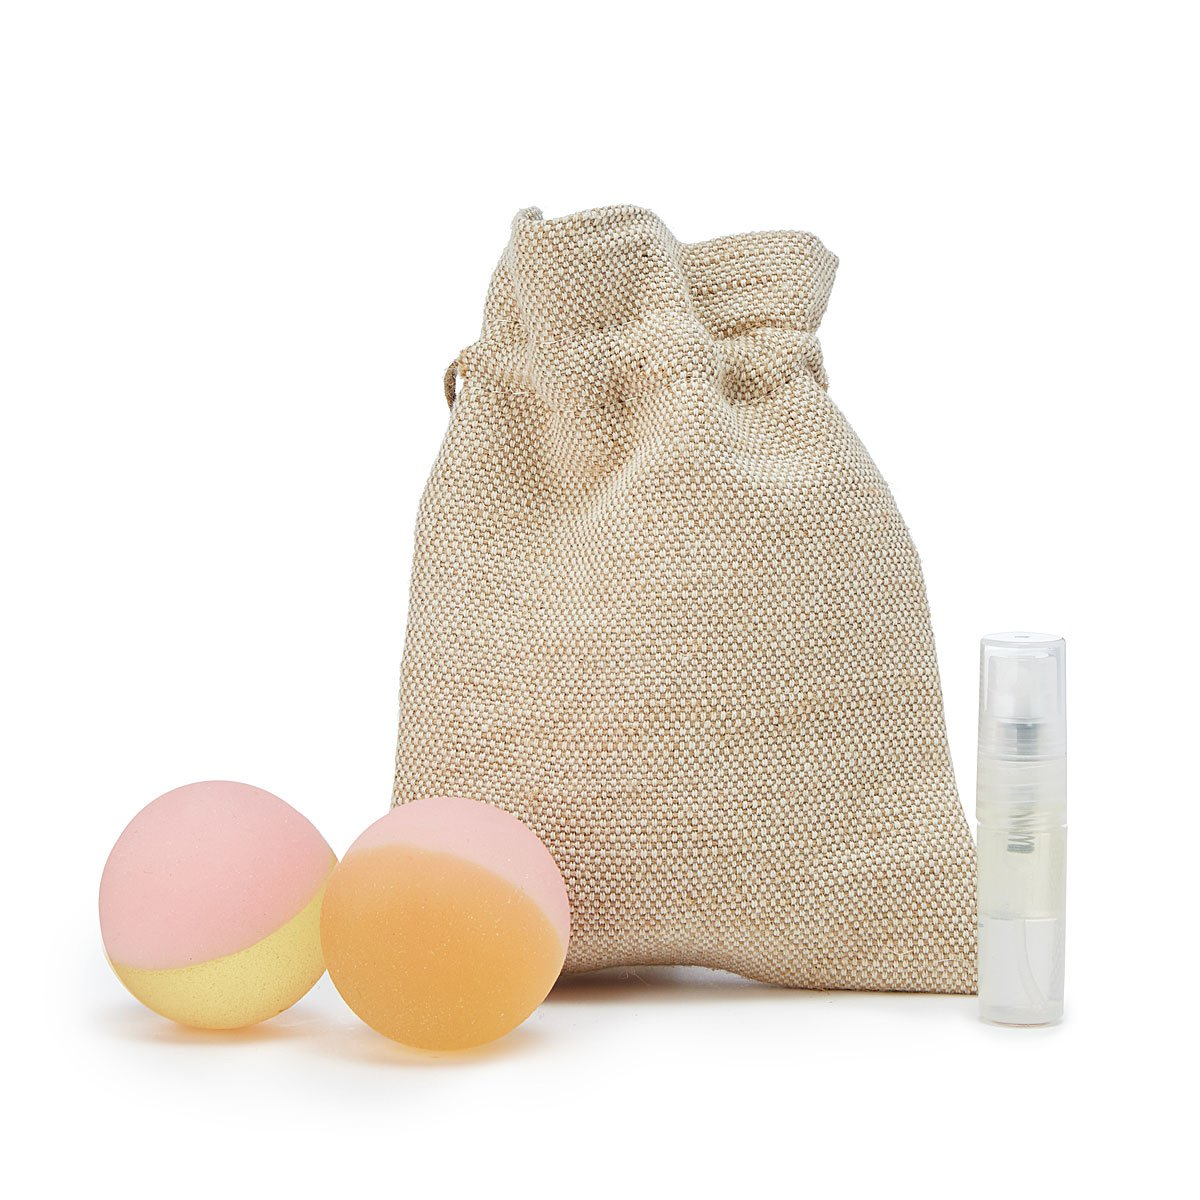 Aromatherapy Massage Ball Sets | UncommonGoods